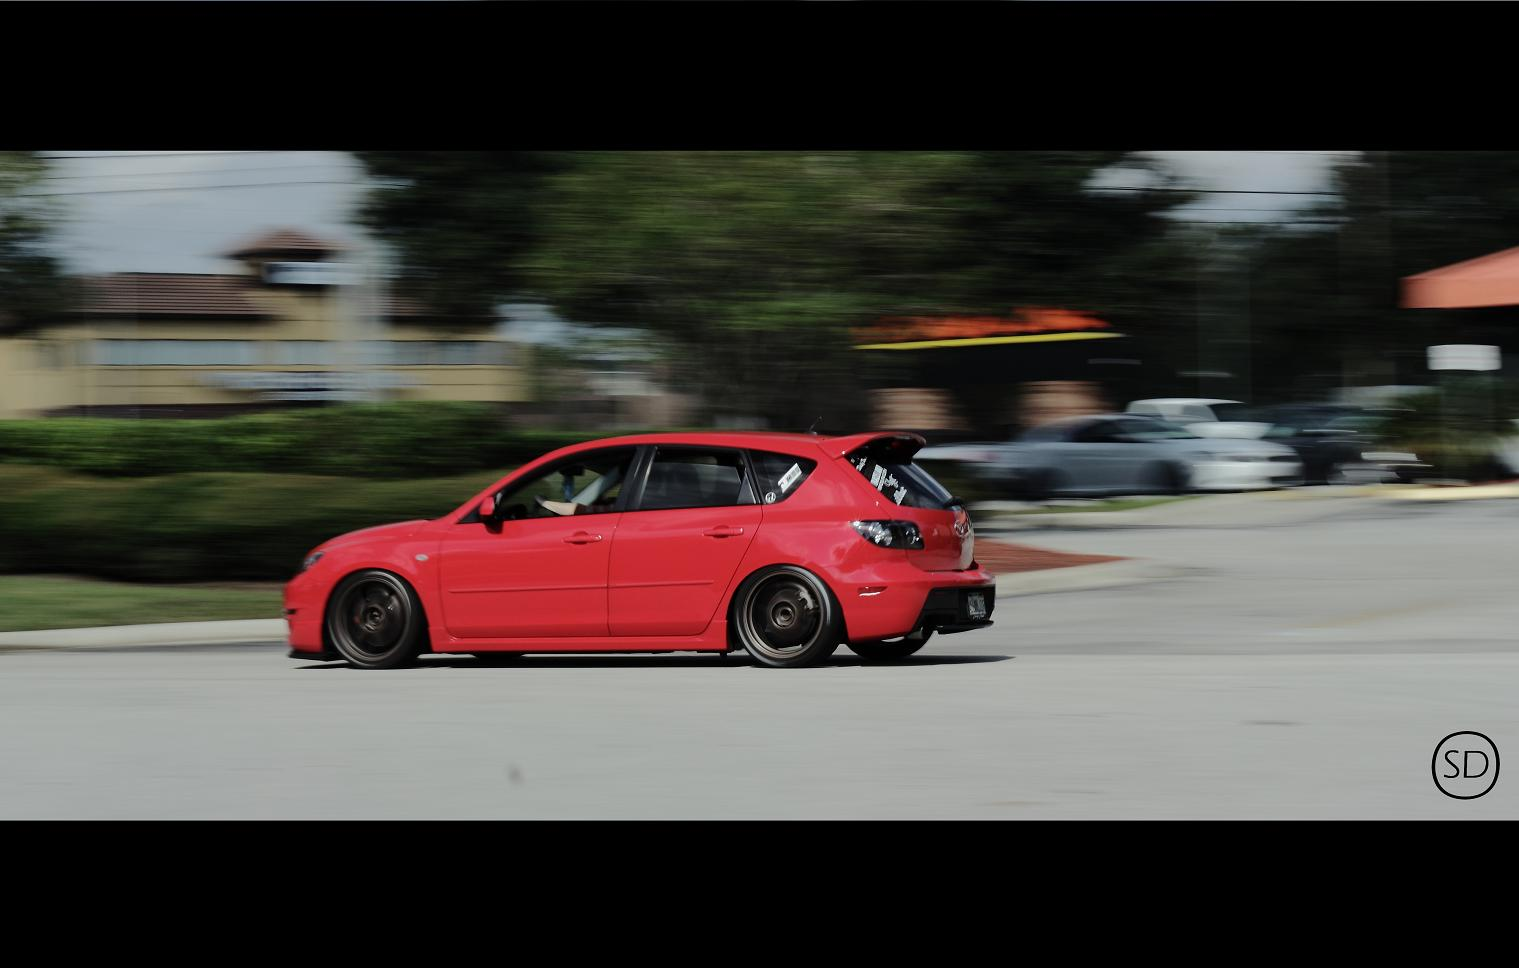 Mazda 3 Hatch Leaving Cars & Coffee | Flickr - Photo Sharing!